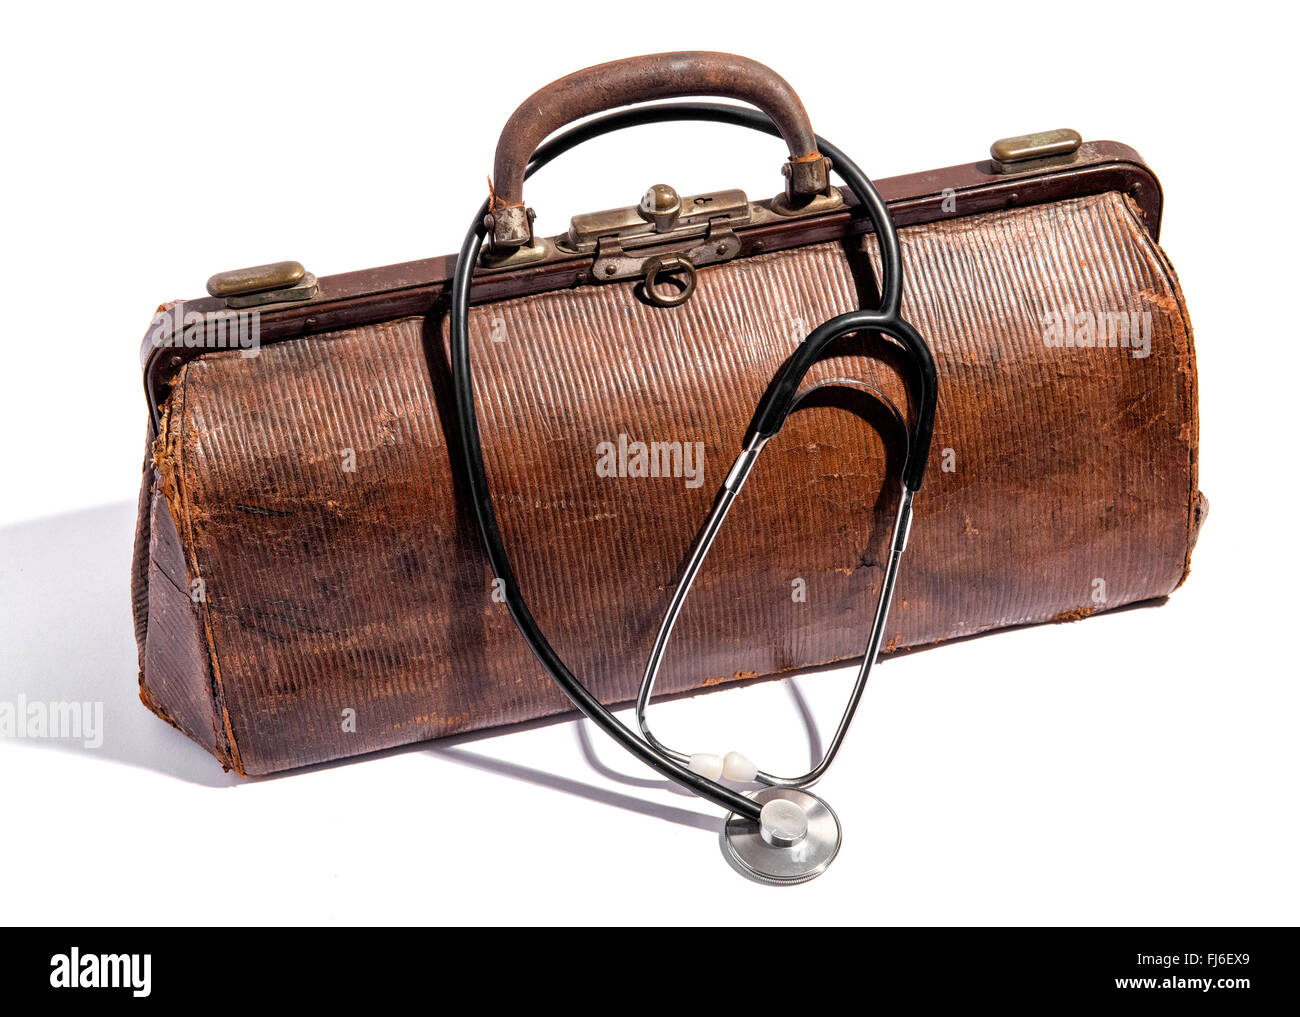 Old closed battered brown leather doctors bag for instruments and equipment - Stock Image